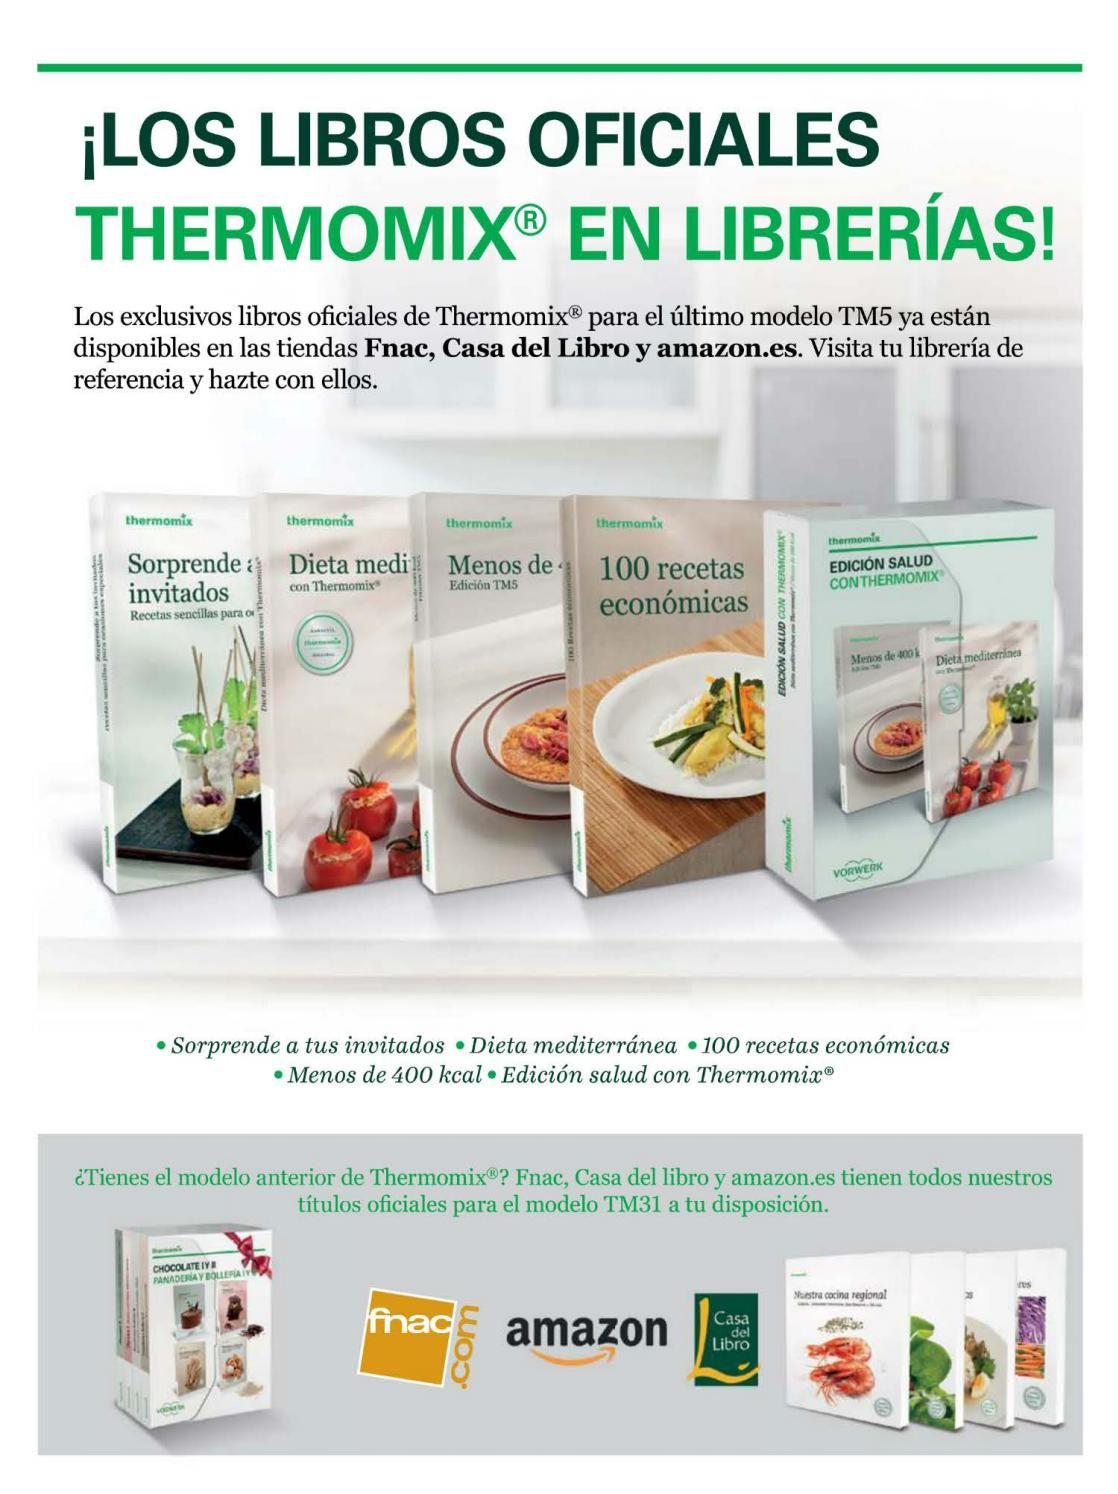 Thermomix Libros Oficiales 090 Abr 16 Ligero Y Fácil Thermomix Thermomix Make It Simple